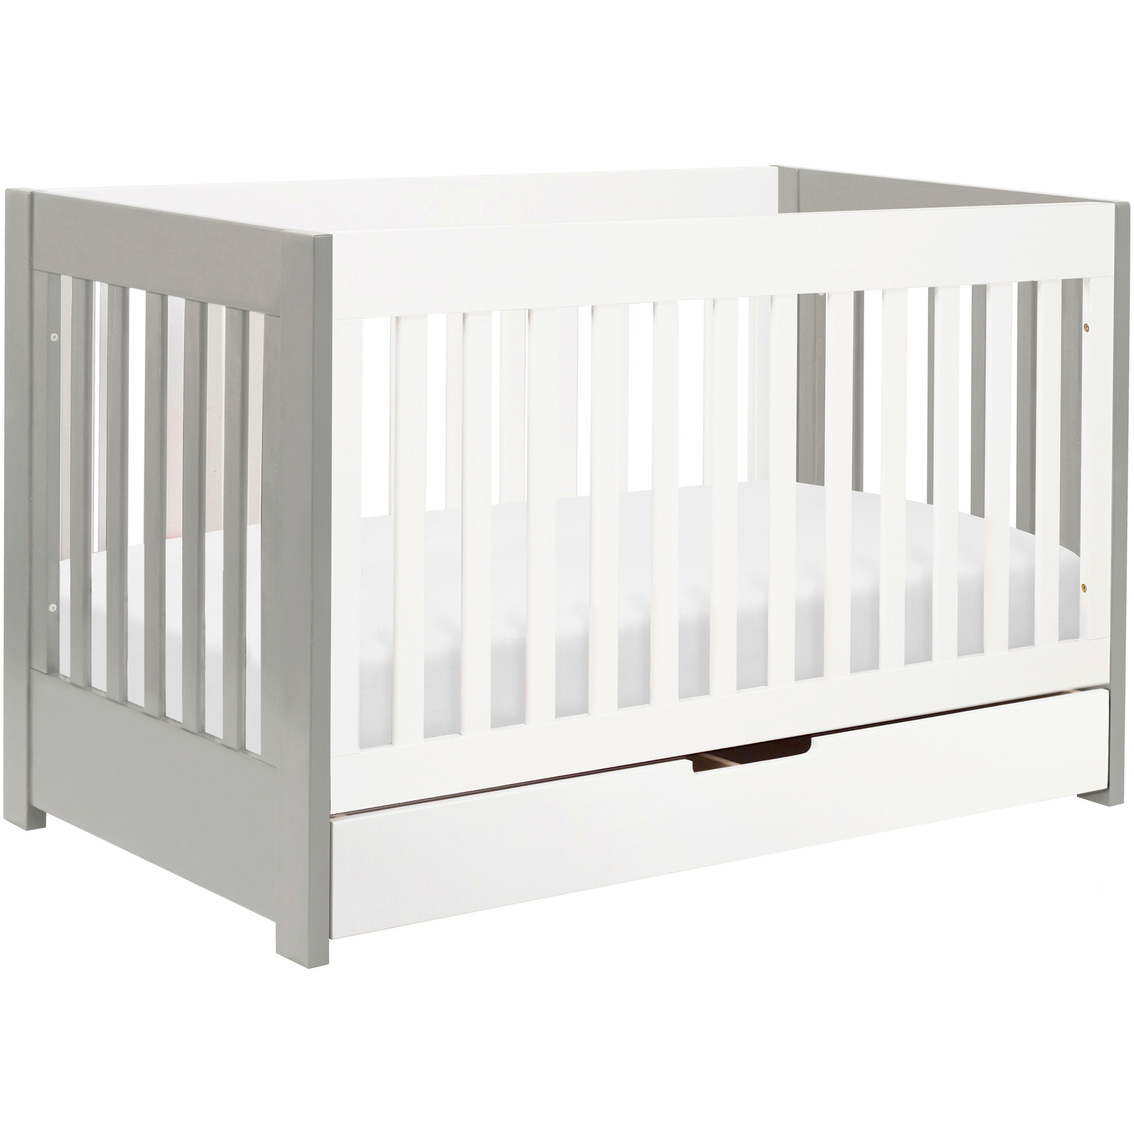 Babyletto Mercer 3 In 1 Convertible Crib With Toddler Bed Conversion Kit